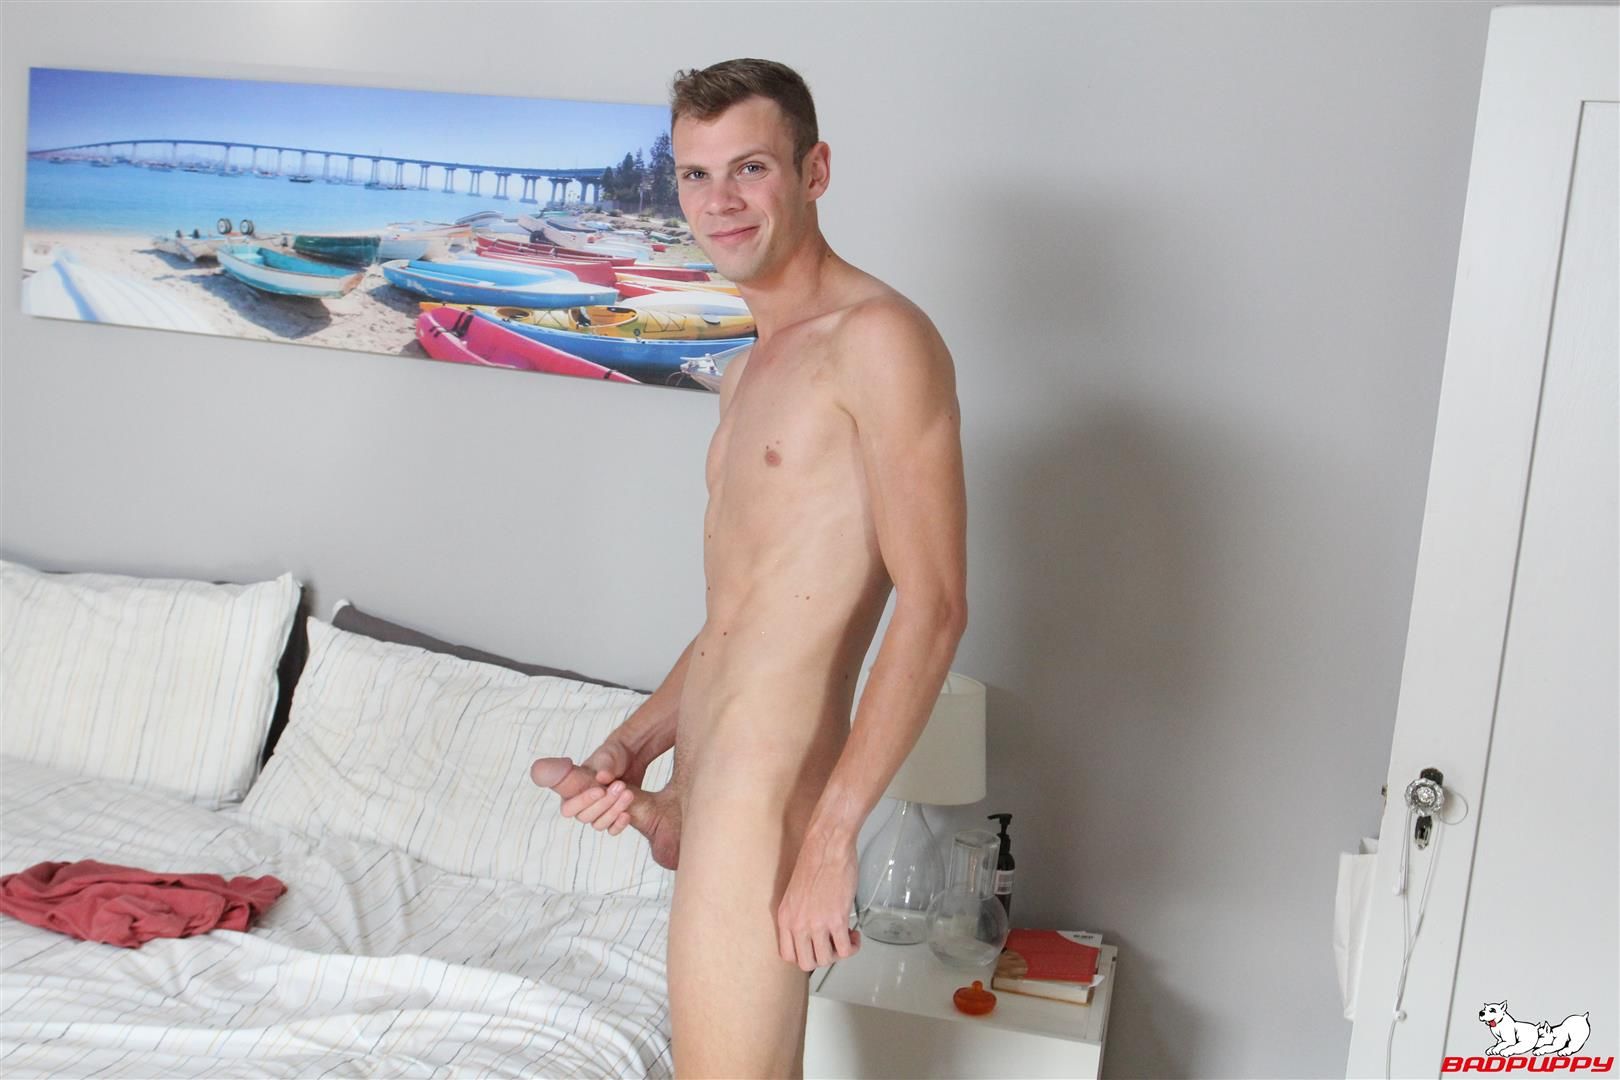 Badpuppy-Cameron-Taylor-Big-Dick-Twink-Jerking-Off-Video-08 Big Dick Twink Cameron Taylor Showing Off And Jerking Off